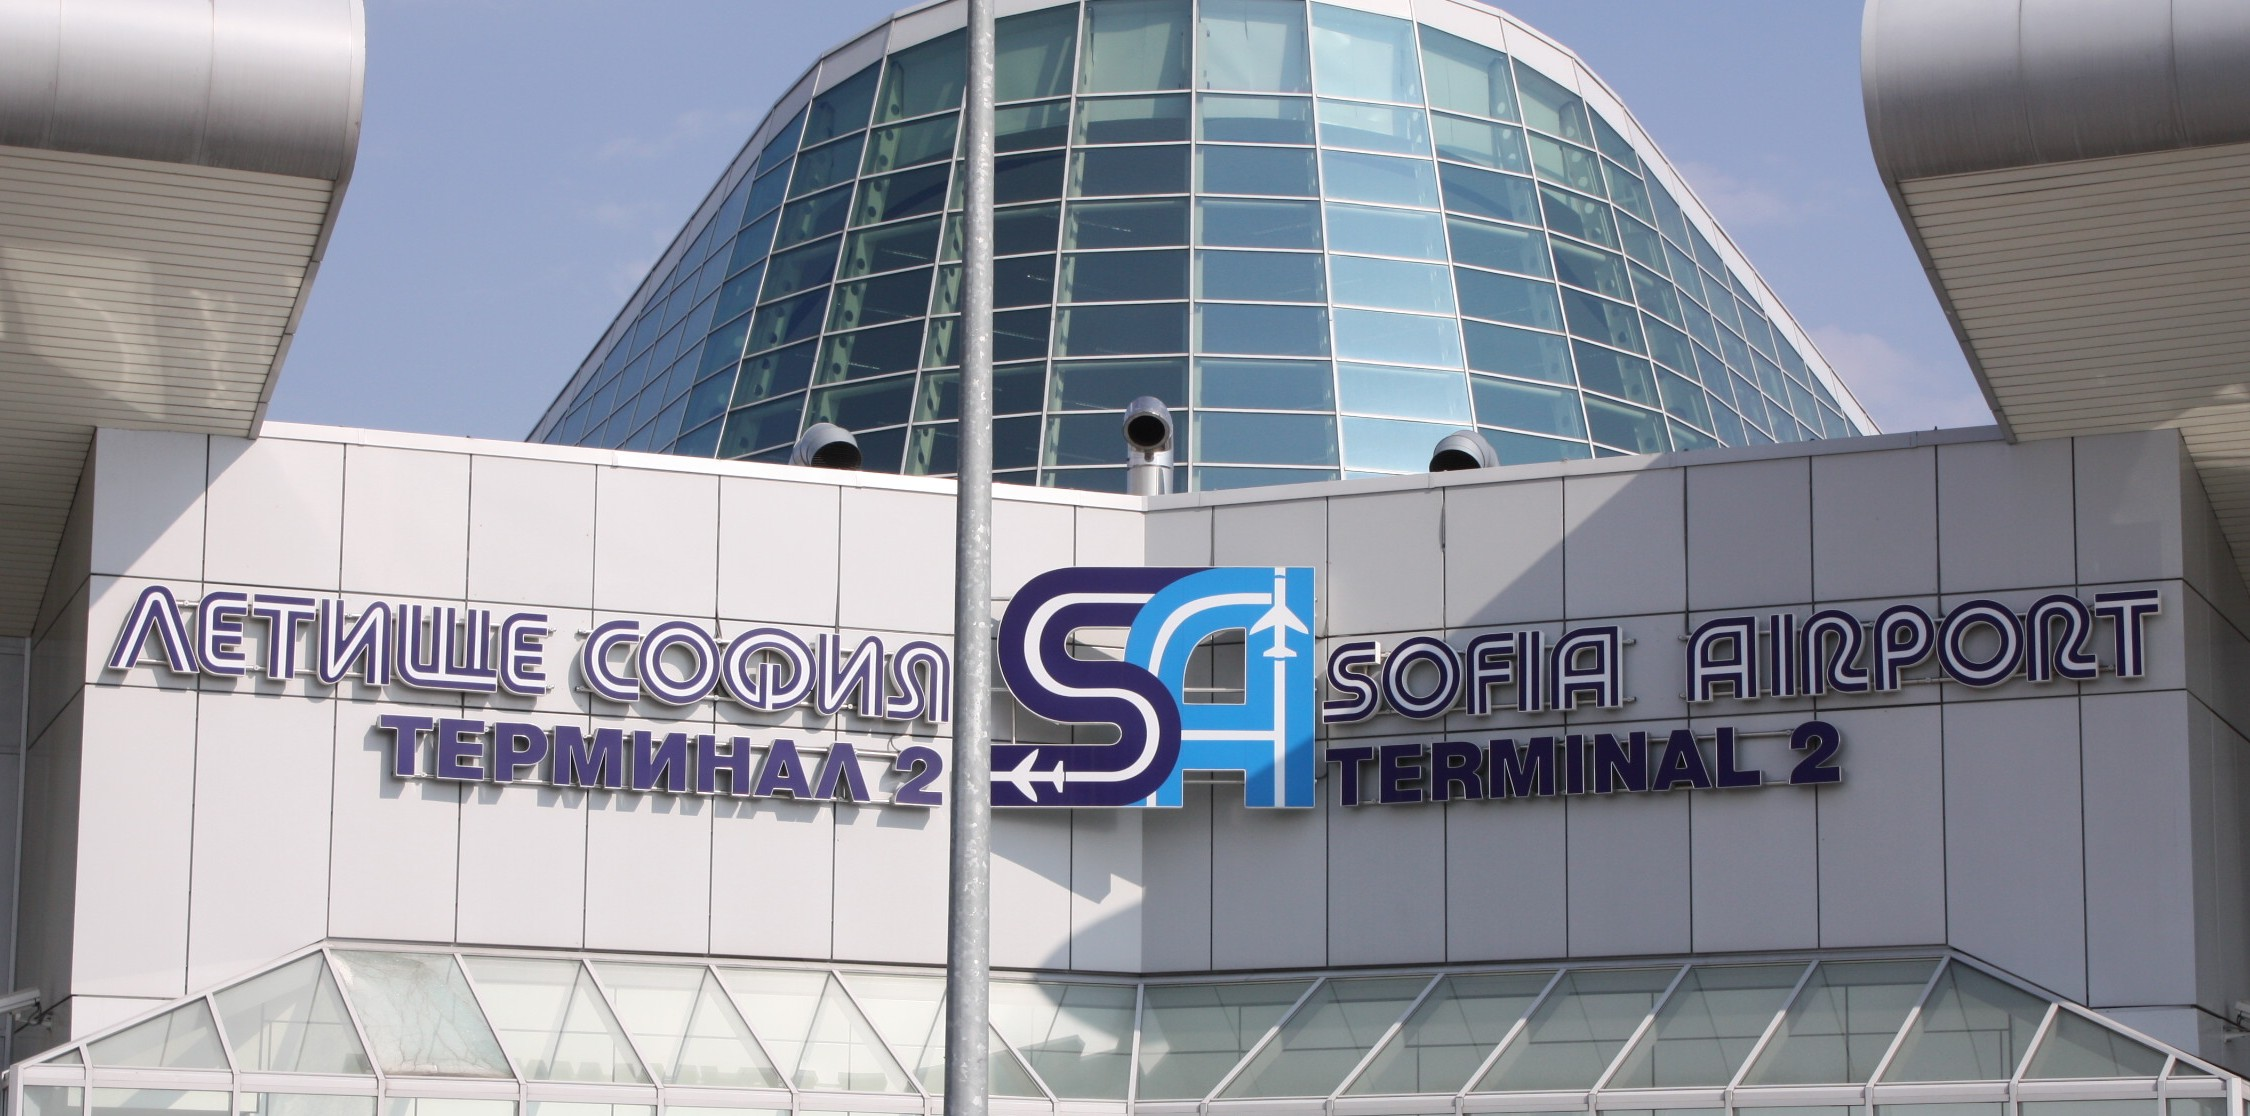 Sofia airport - downtown